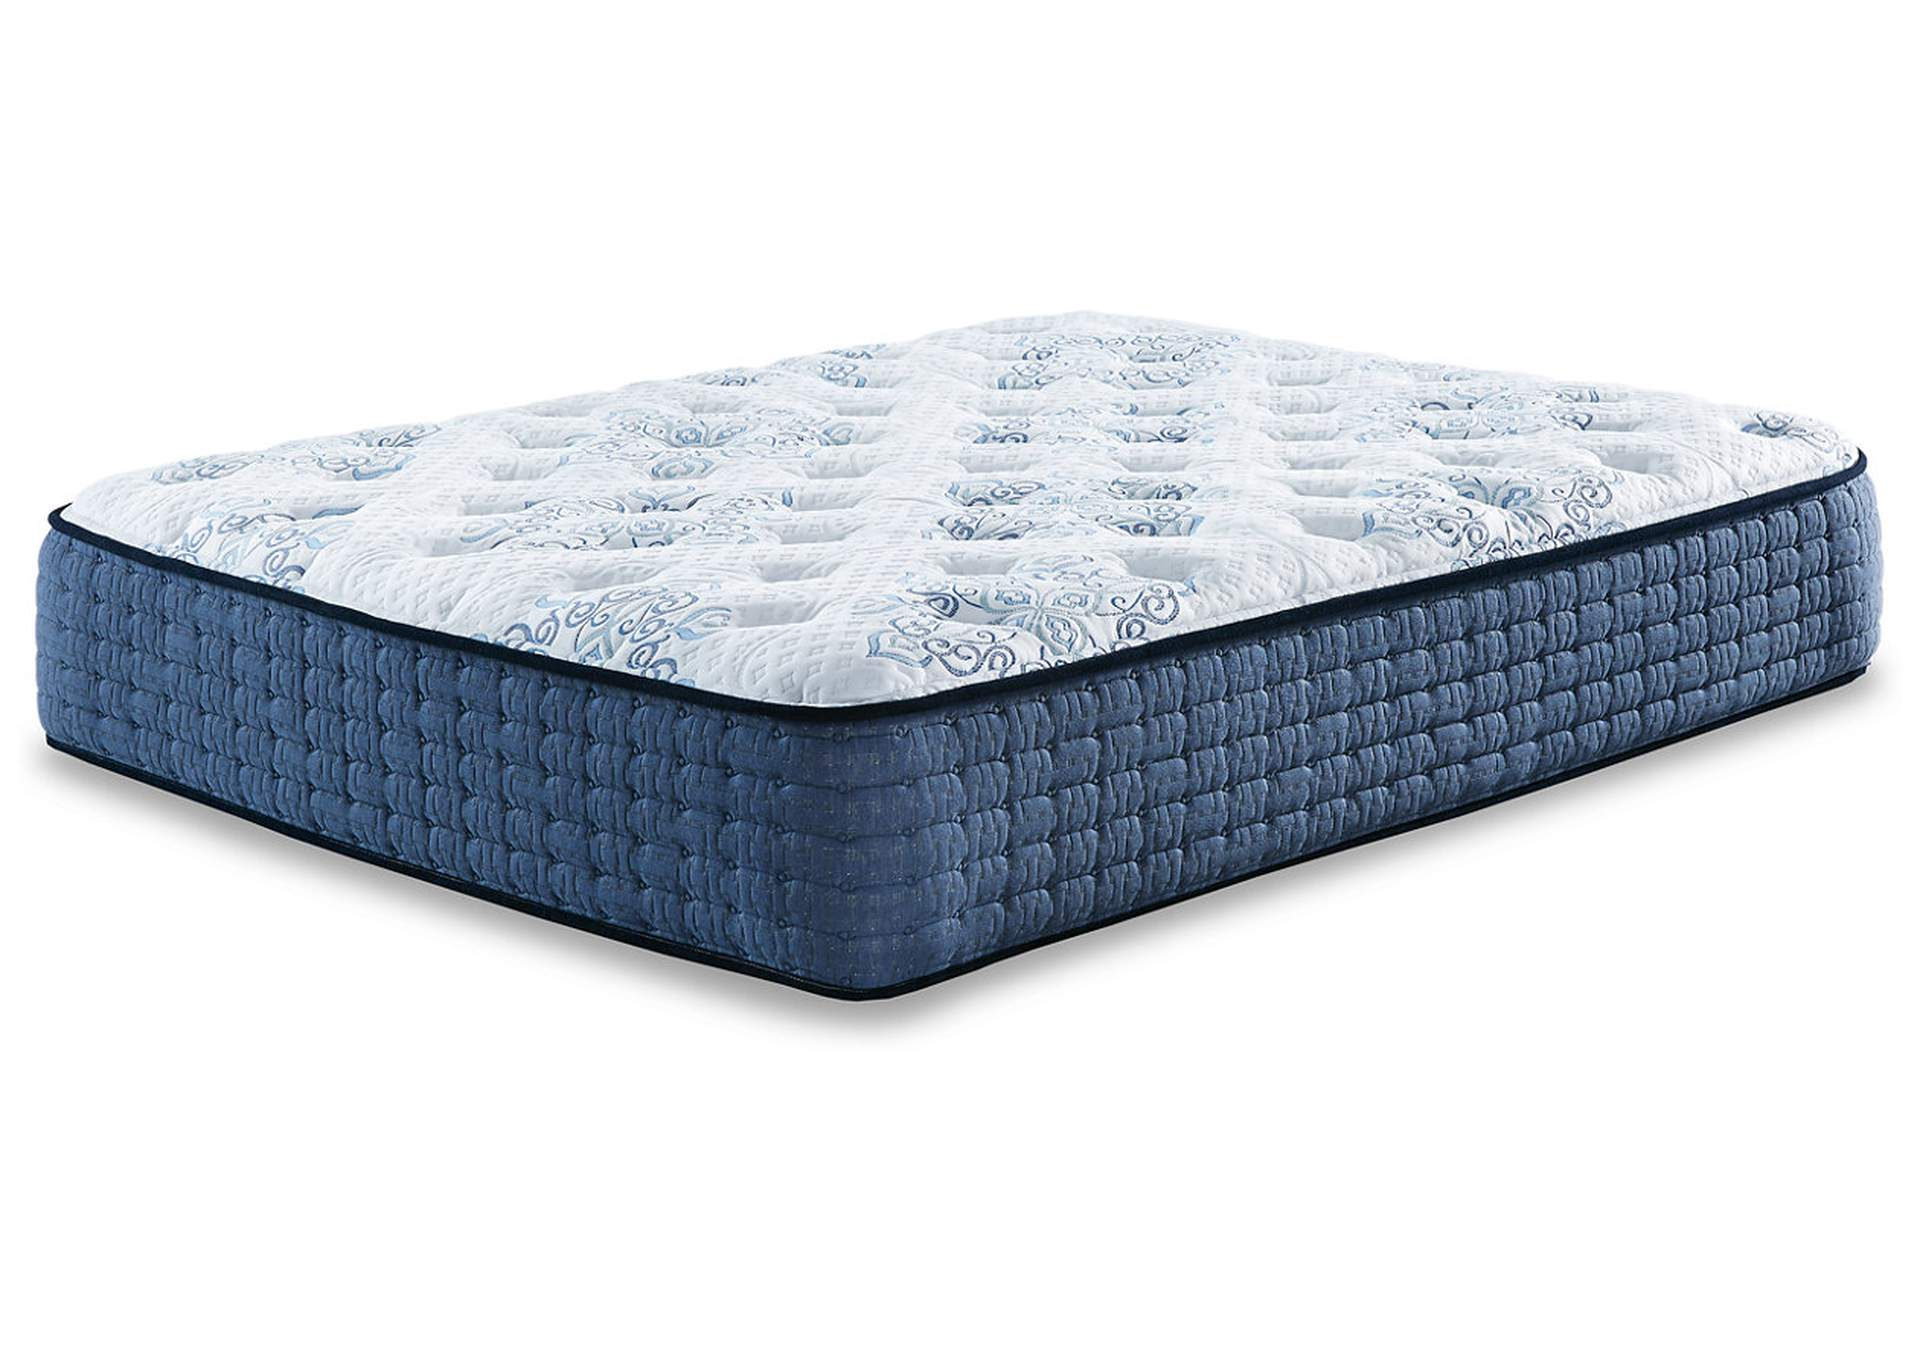 Mt Dana Plush Queen Mattress,Sierra Sleep by Ashley